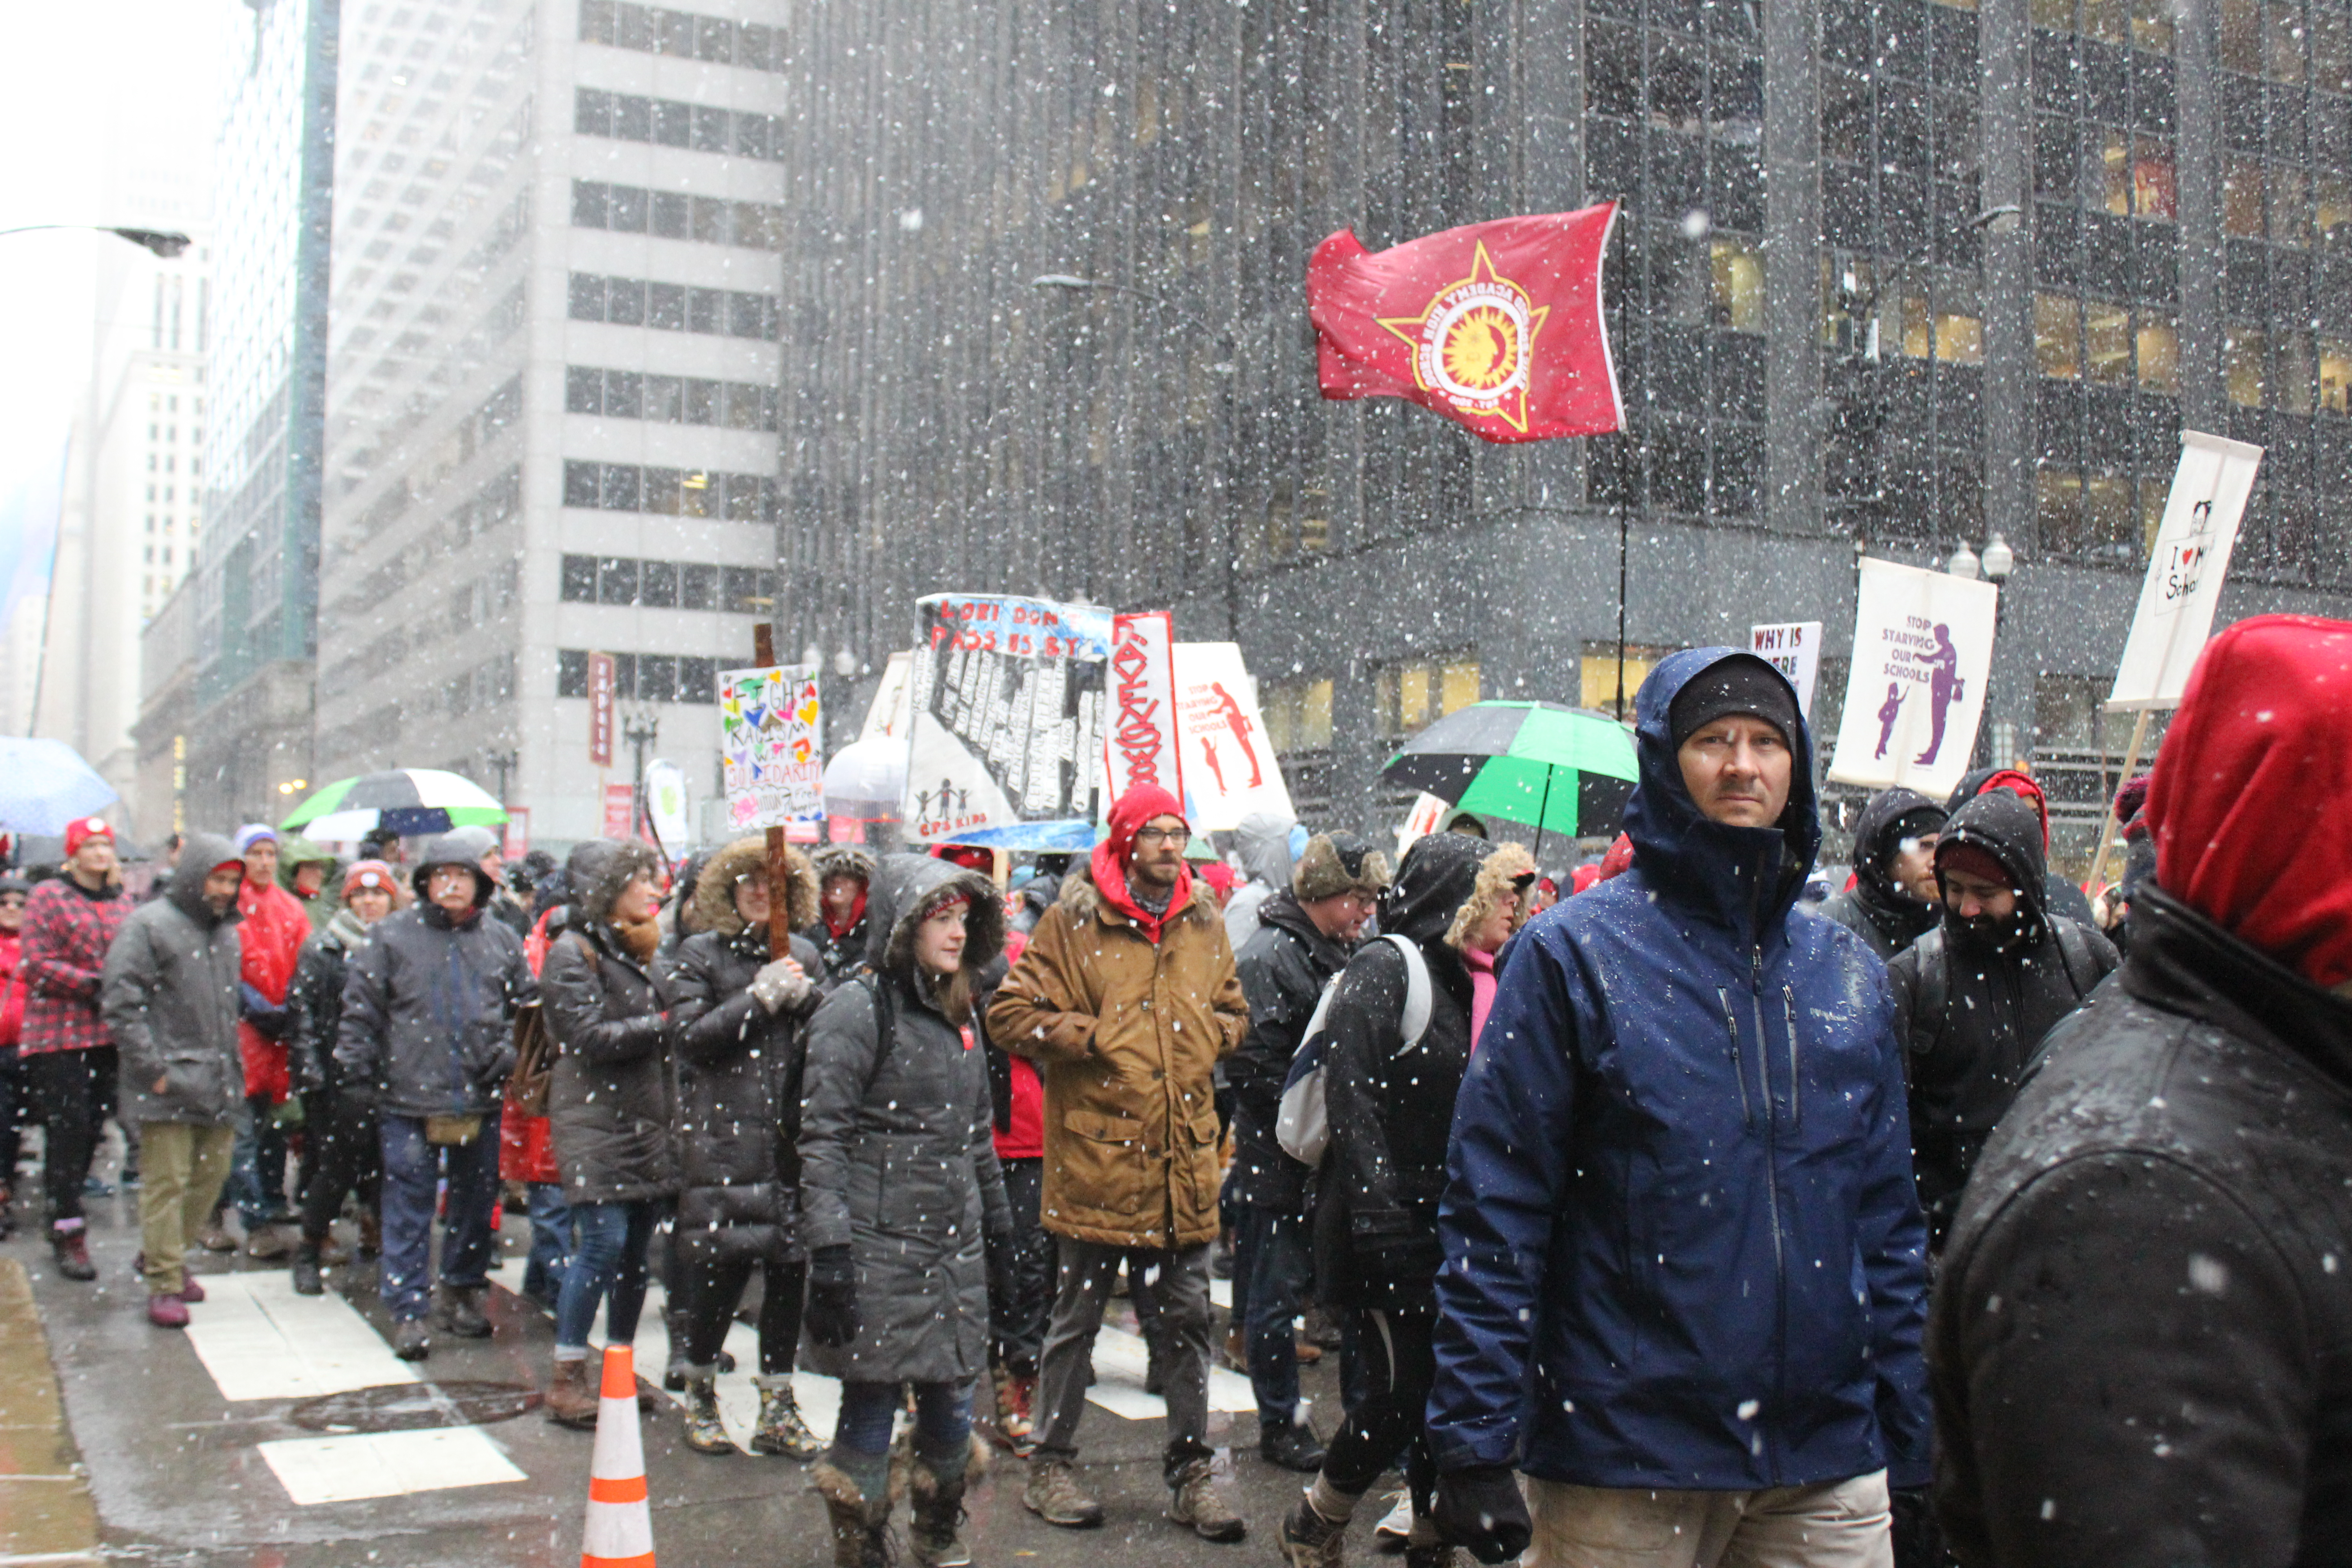 Protesters with the Chicago Teachers Union march in downtown Chicago on Oct. 31, 2019, to press for a contract.